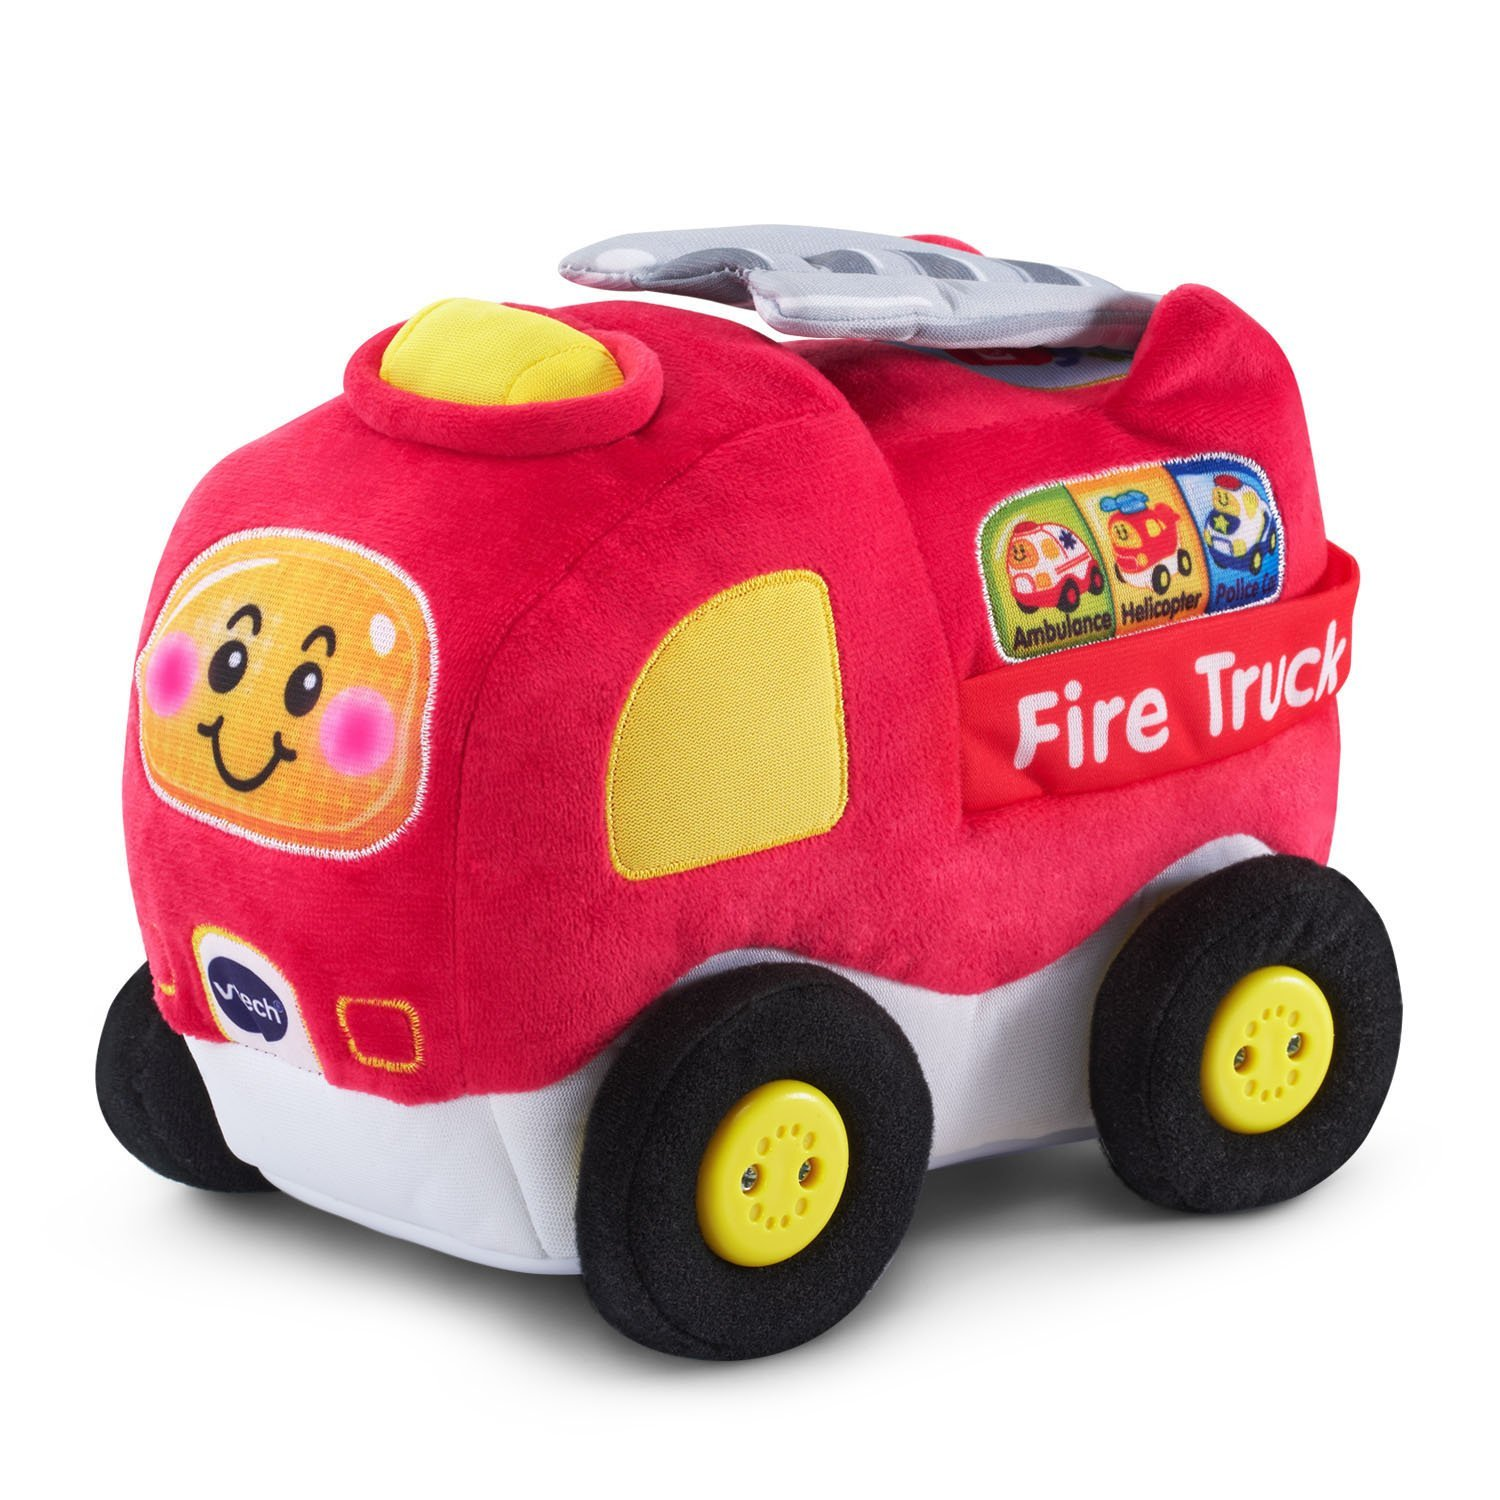 Crawl & Cuddle Fire Truck, USA, Brand VTech by